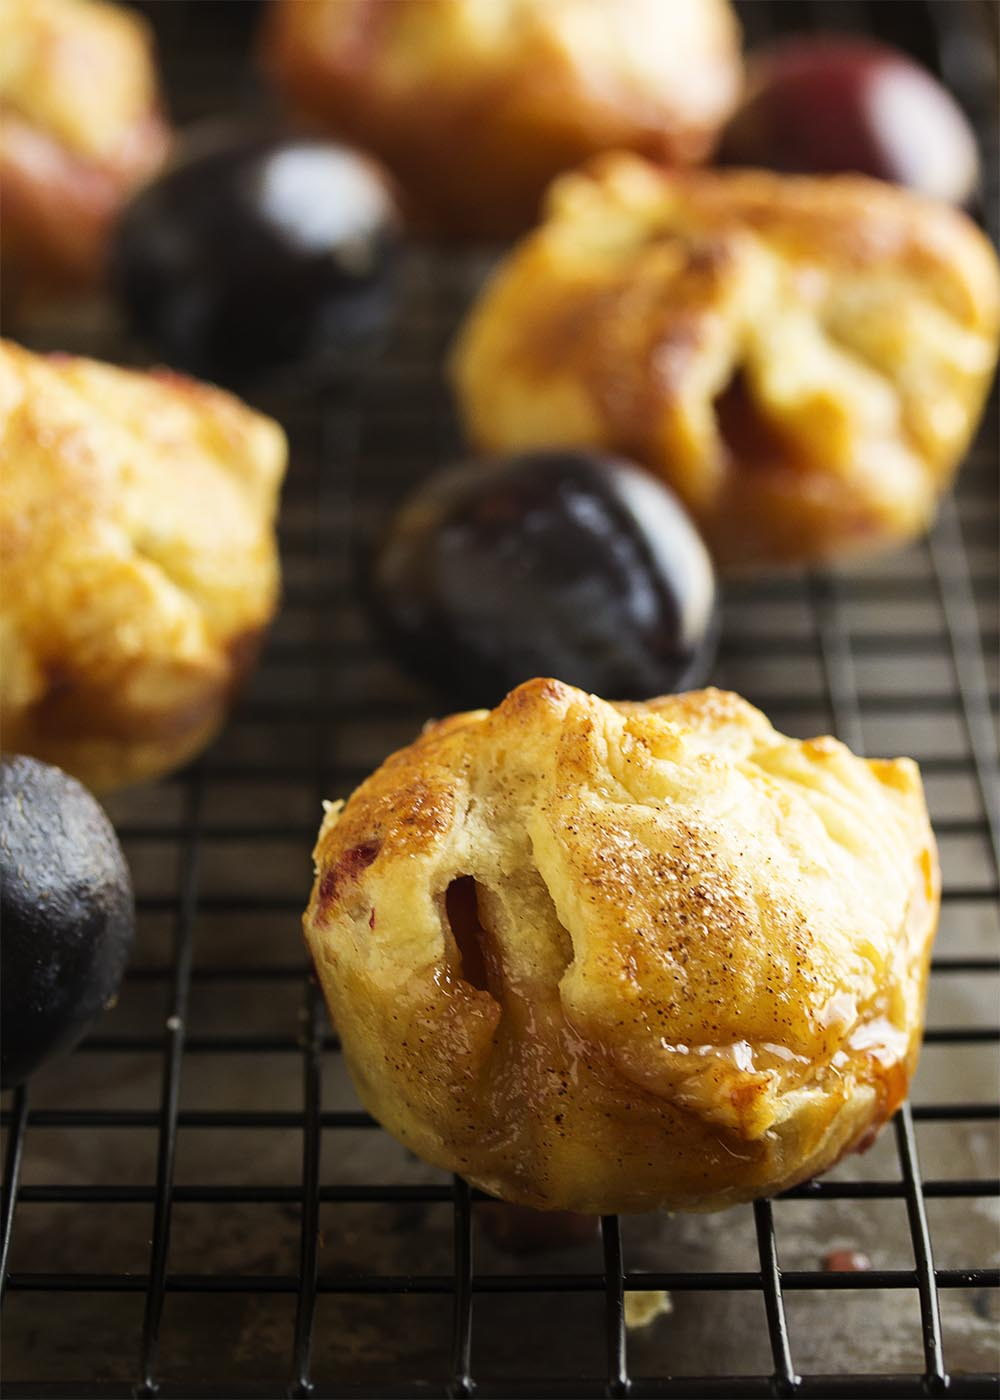 Pull out your muffin tin for easy clean up and wrap plum slices and spiced honey in puff pastry to make these puff pastry plum tarts. Bake until they are puffed and golden, then drizzle with a little more spiced honey, and serve with mascarpone whipped cream. | justalittlebitofbacon.com